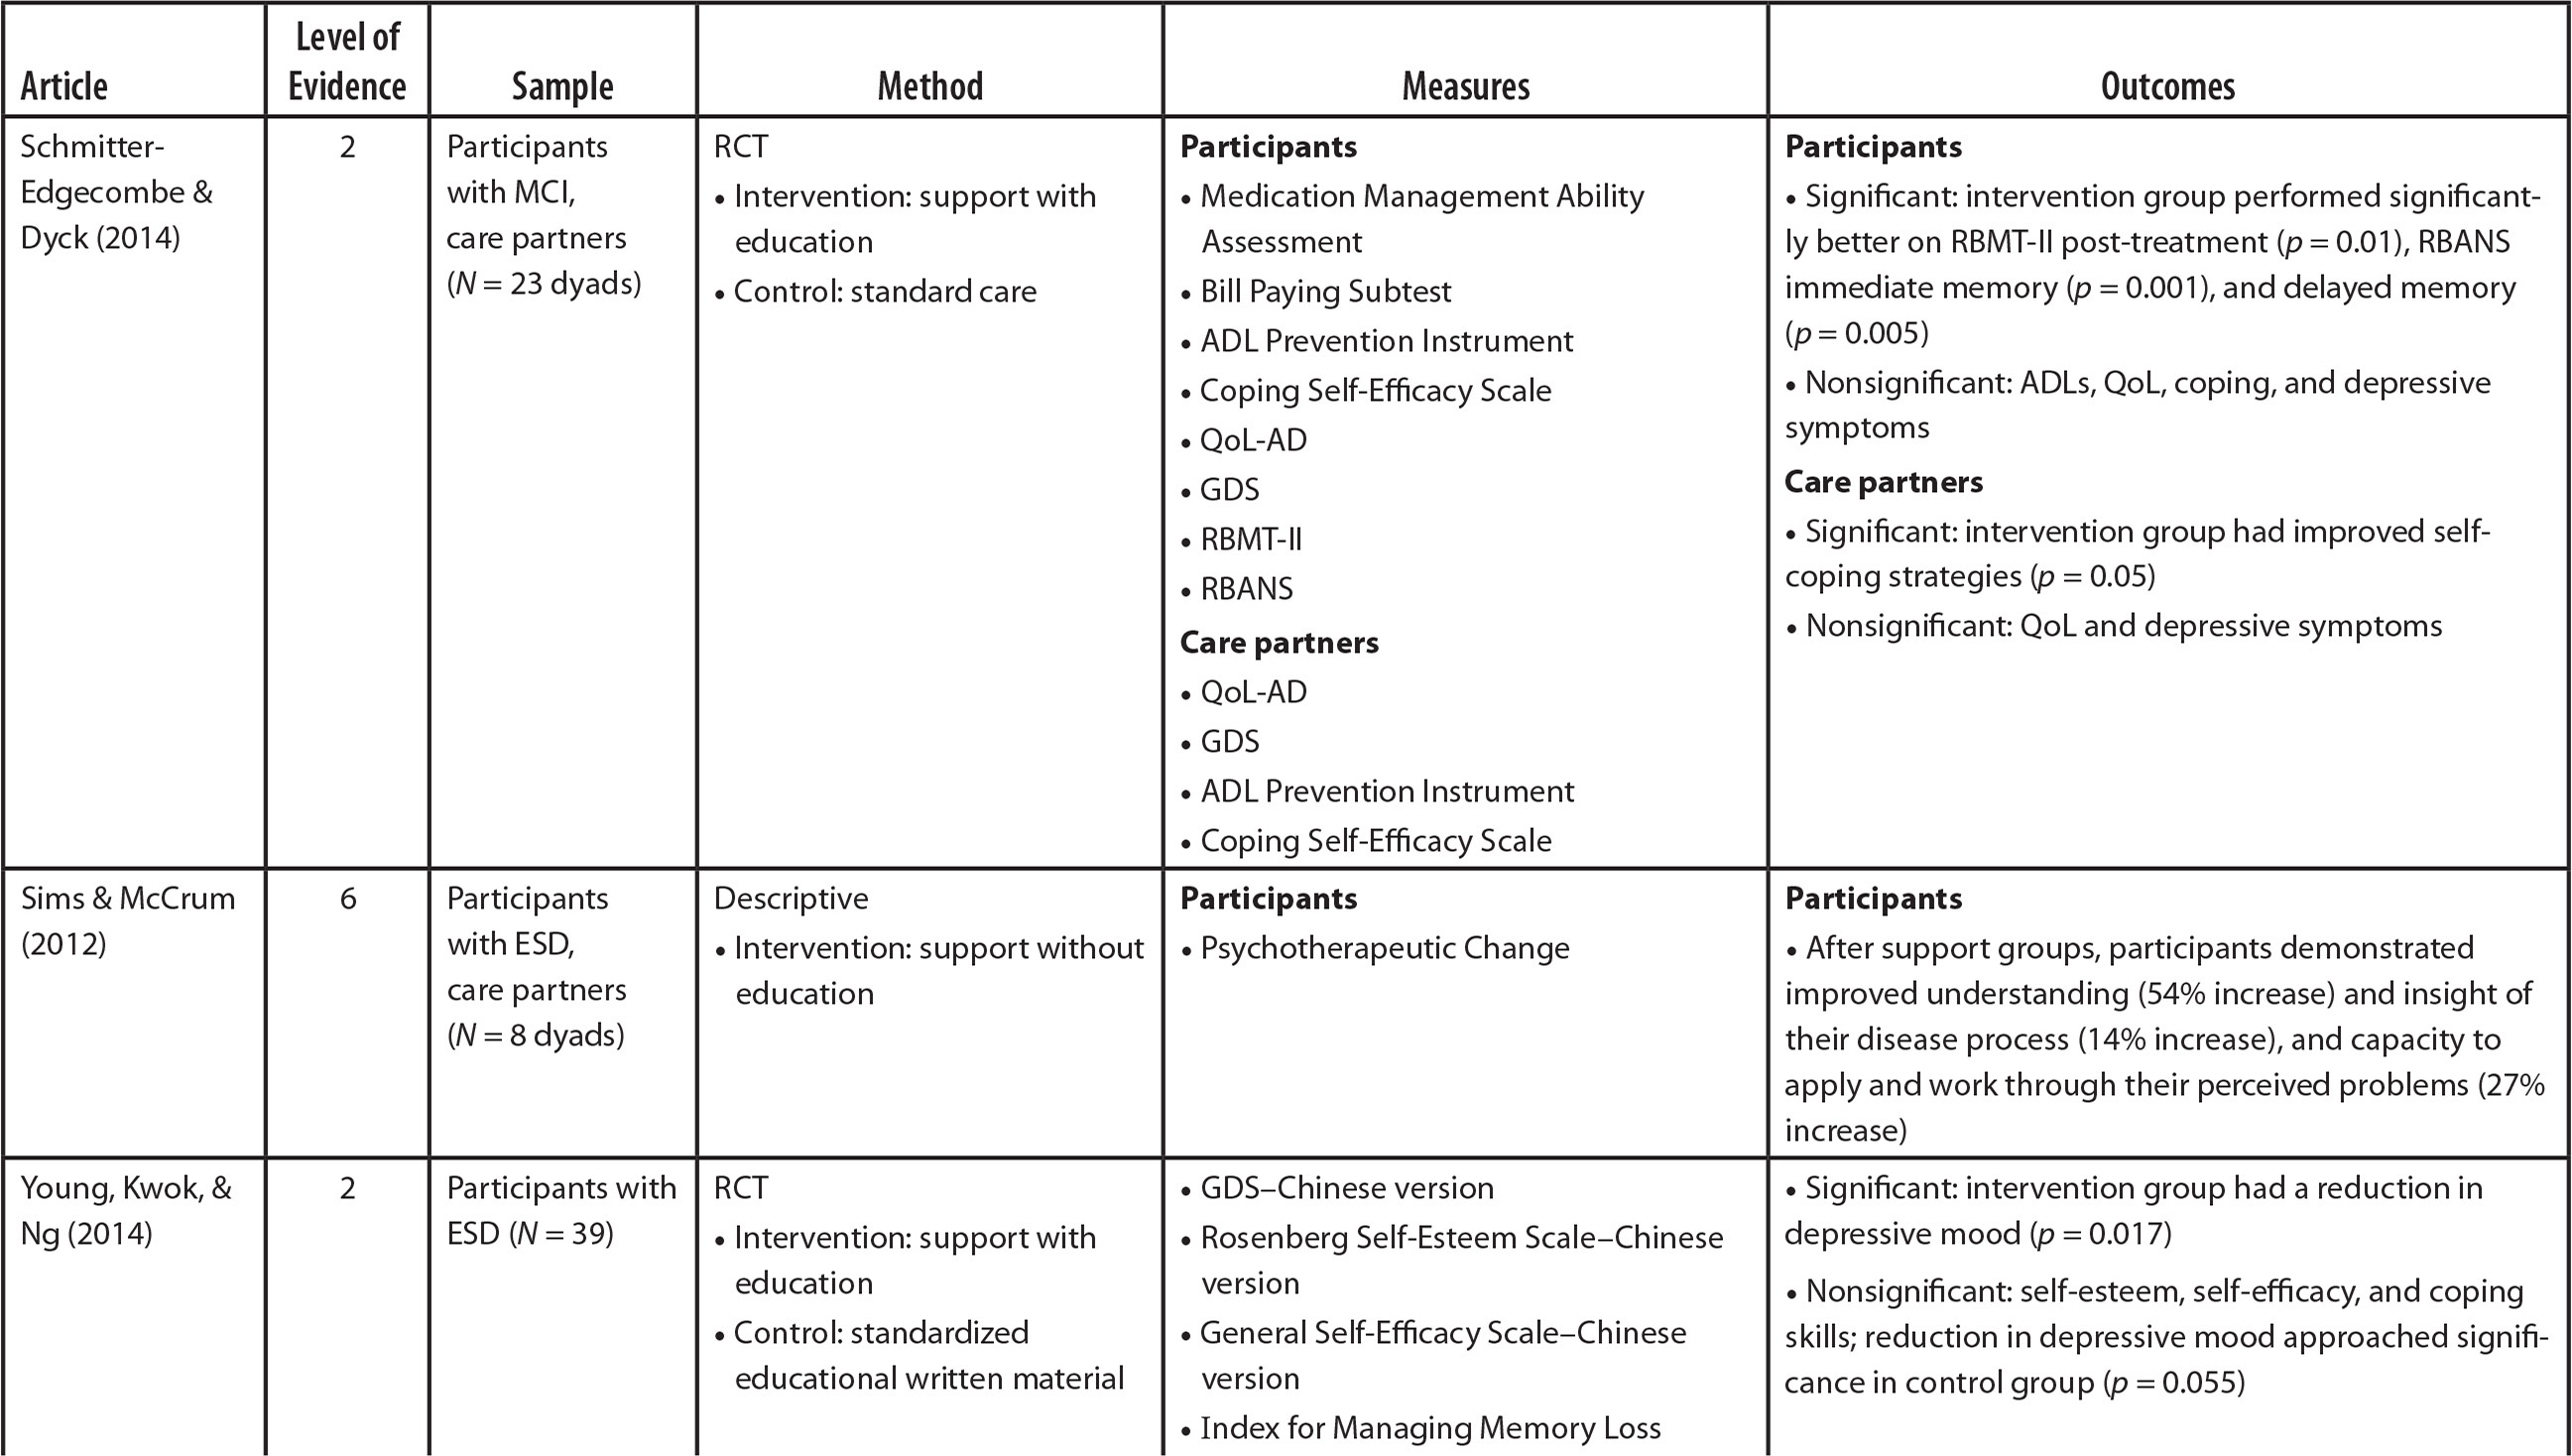 Matrix of Selected Research Articles